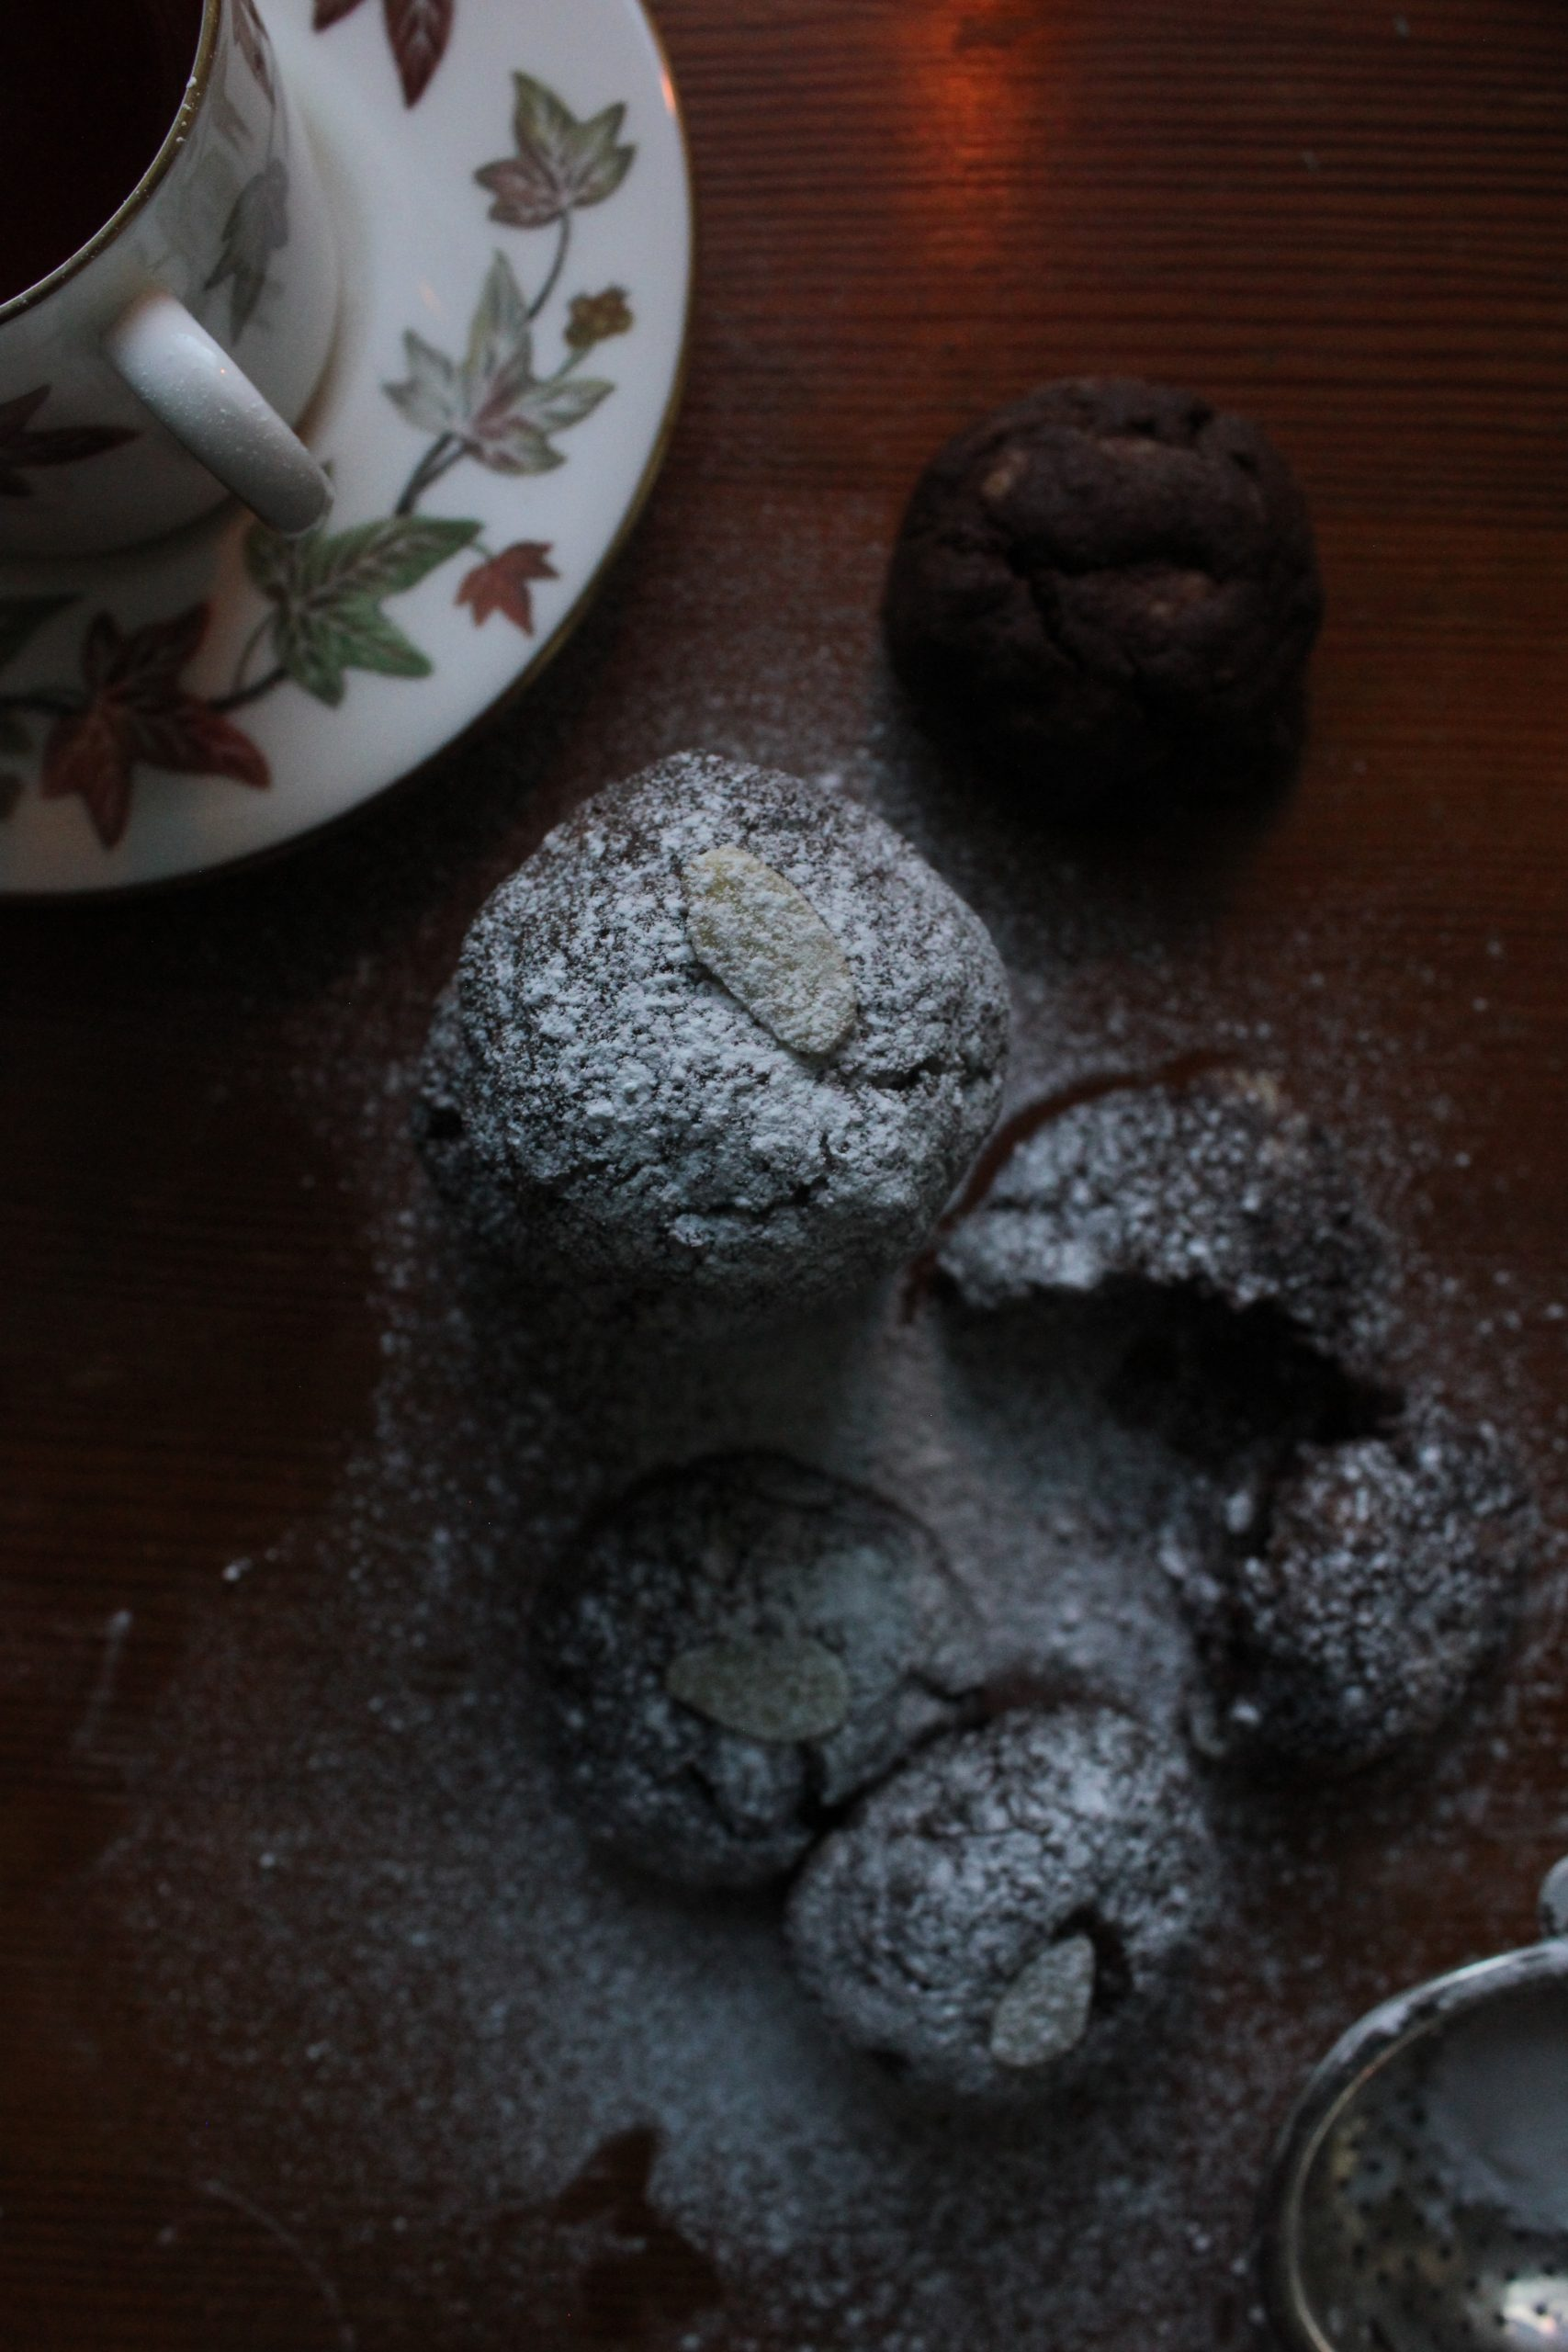 Chocolate and marzipan biscuits